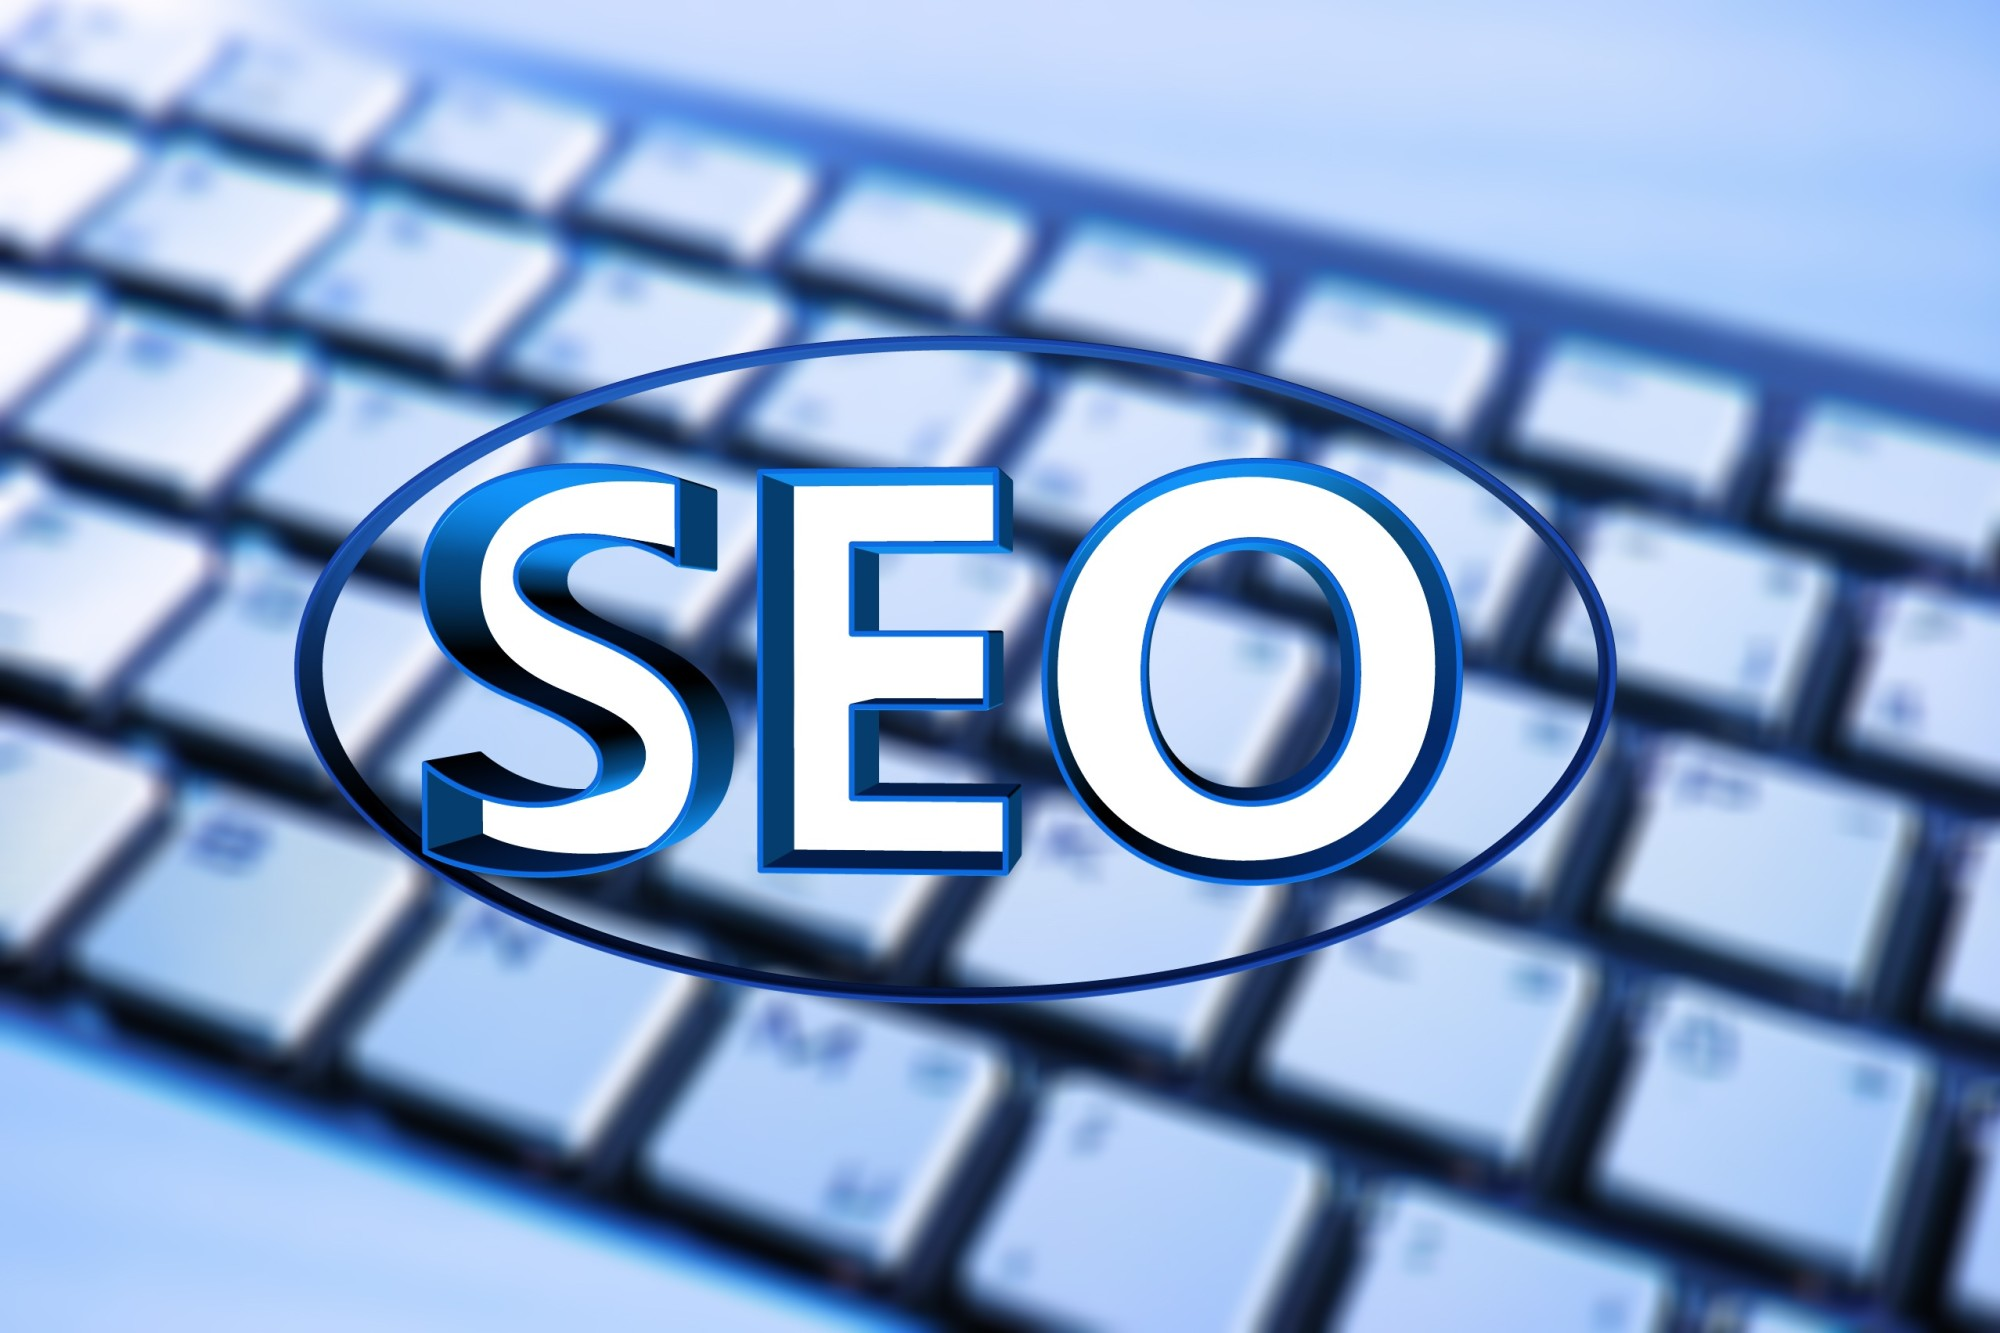 SEO for Doctors: The Top SEO Tips All Physicians Need to Know